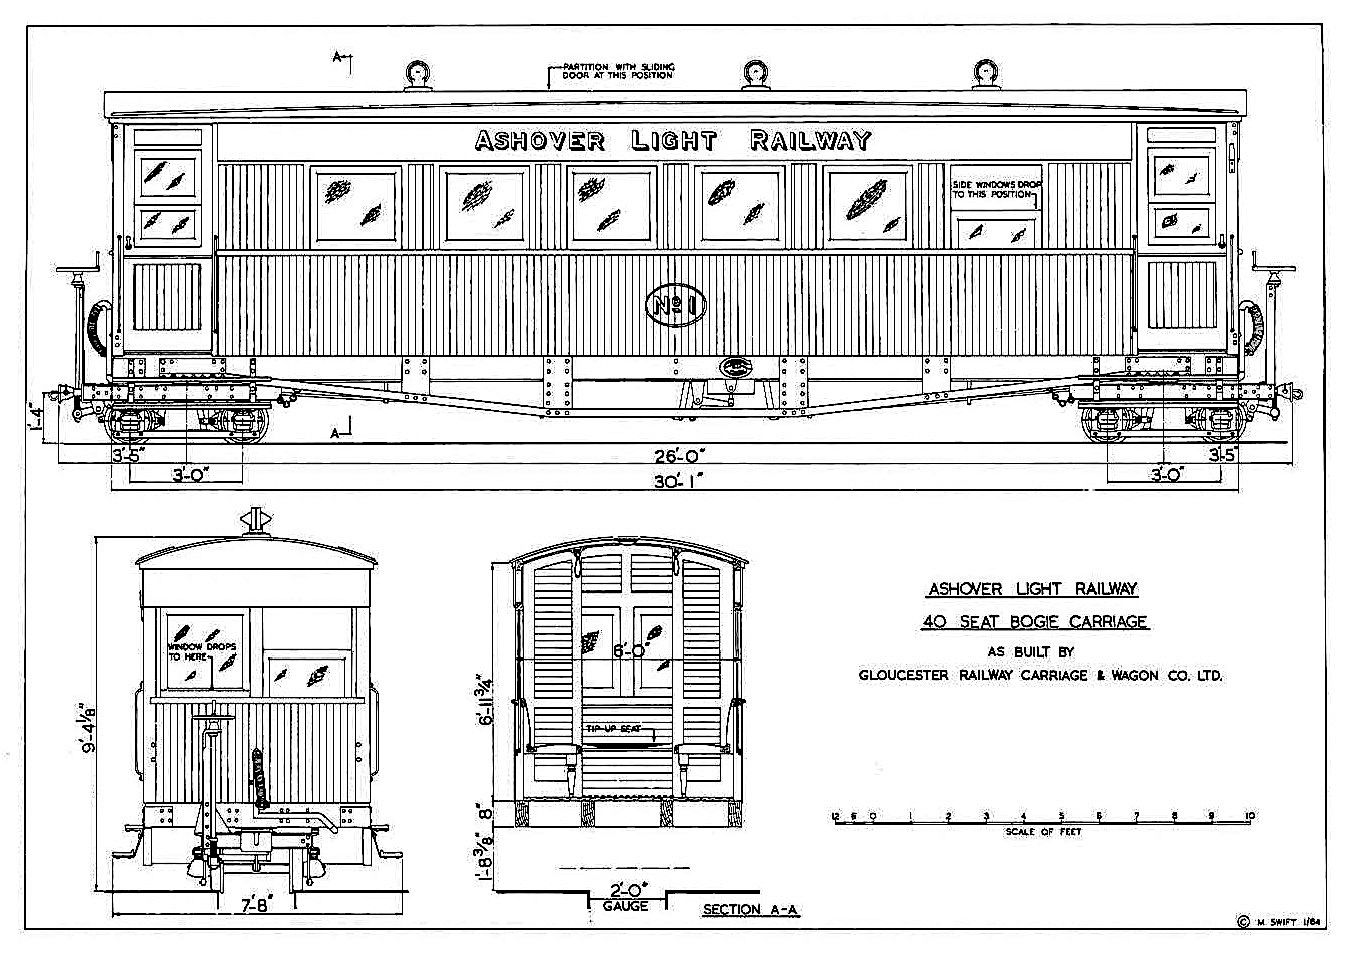 Line drawing of ALR 40-seat bogie carriage No 1 built by the